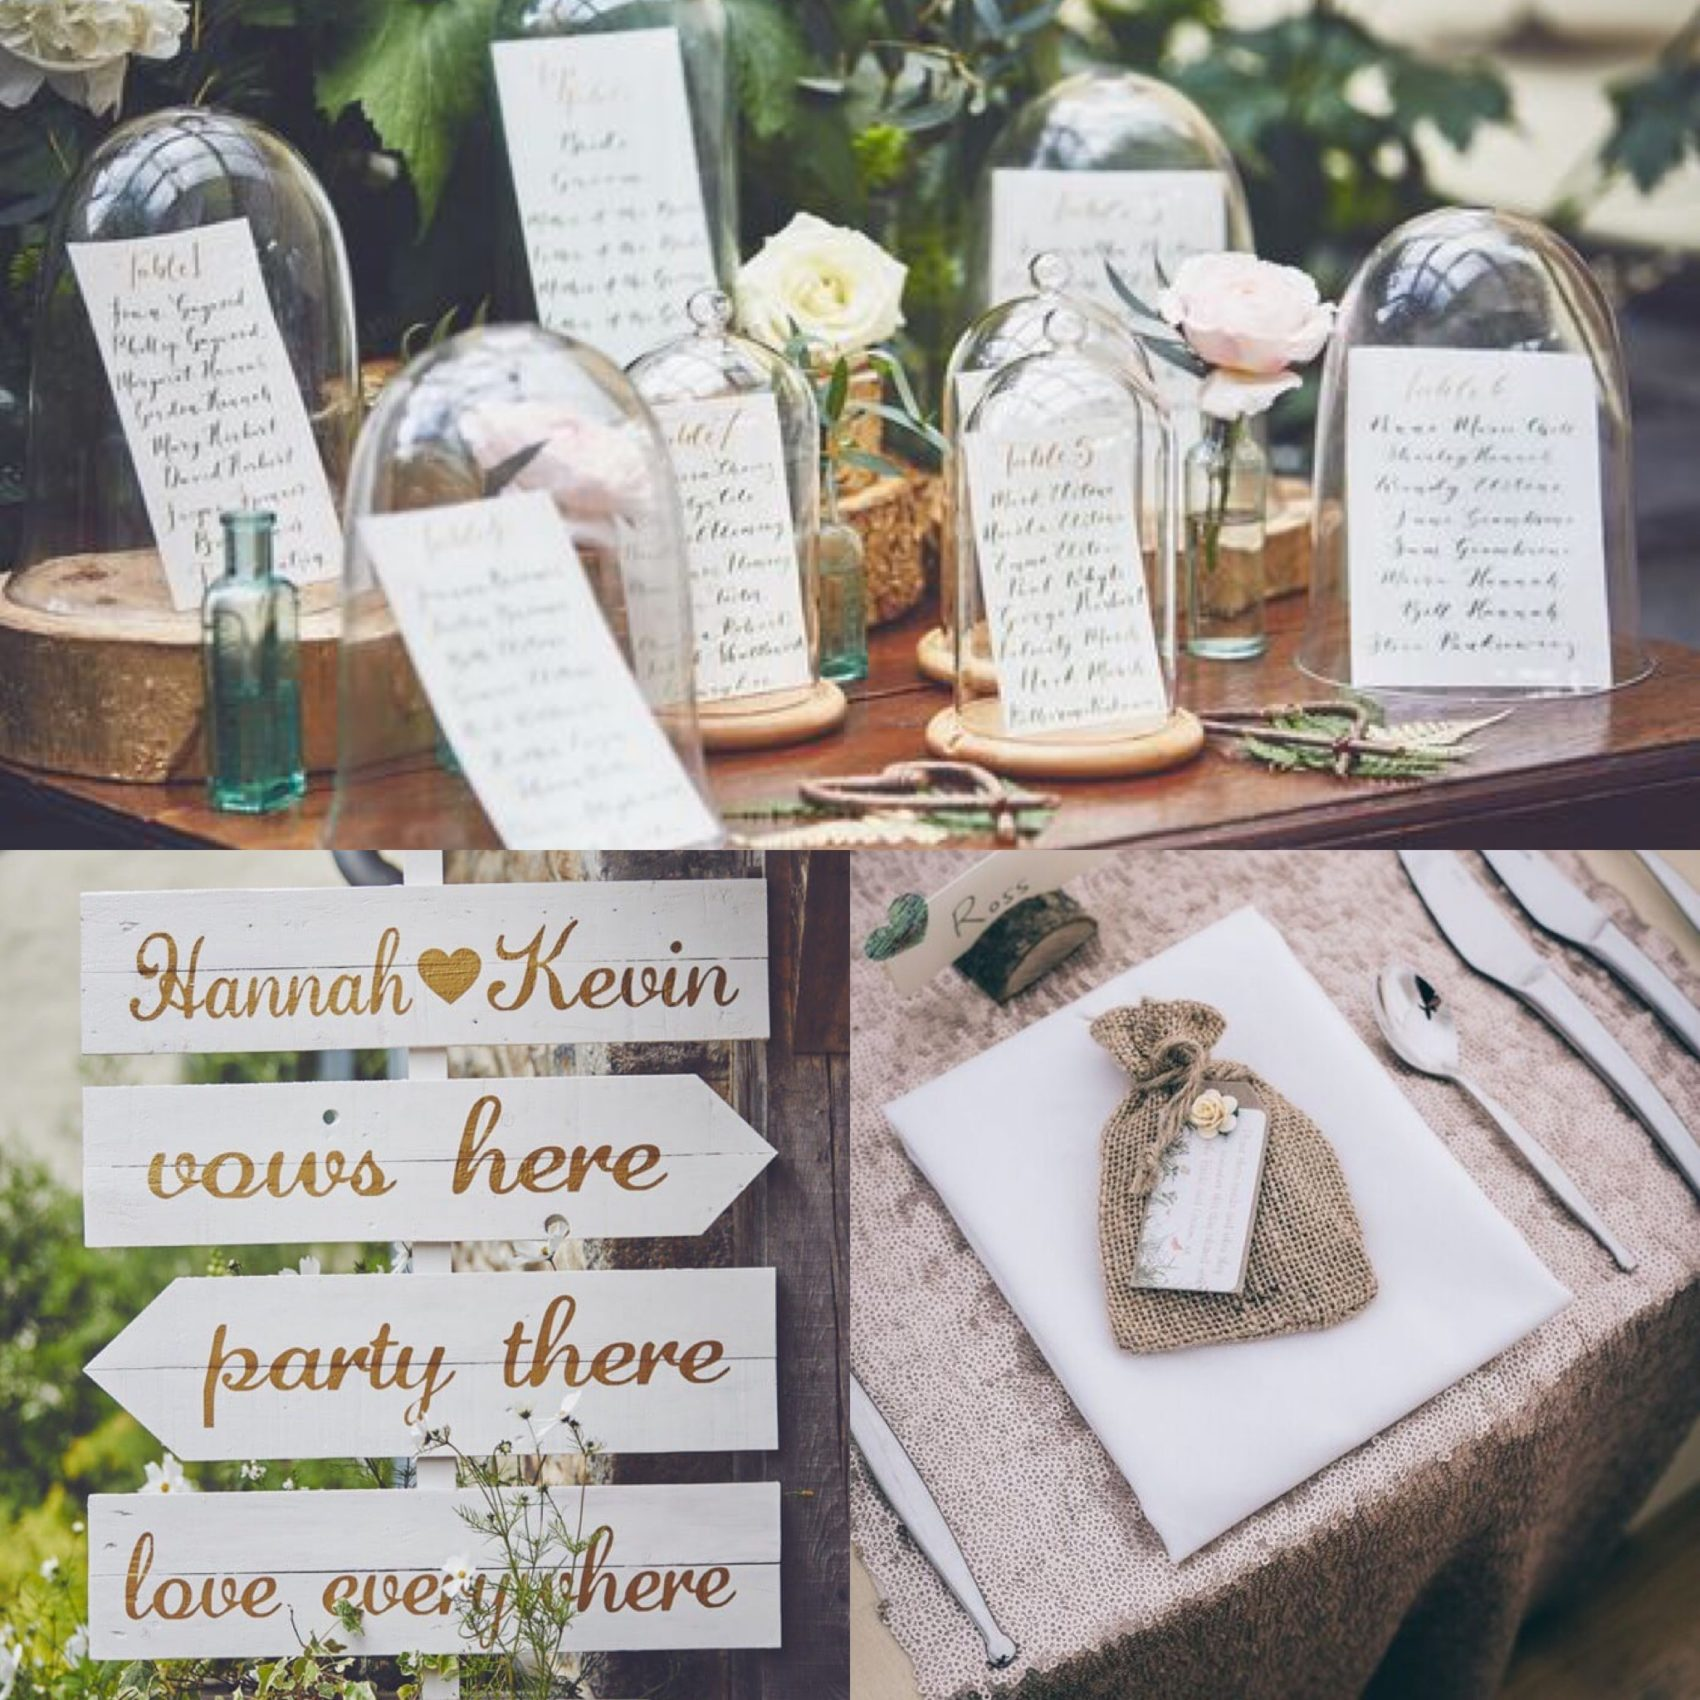 stationary, ever after weddings, paper craft, other ideas, guests